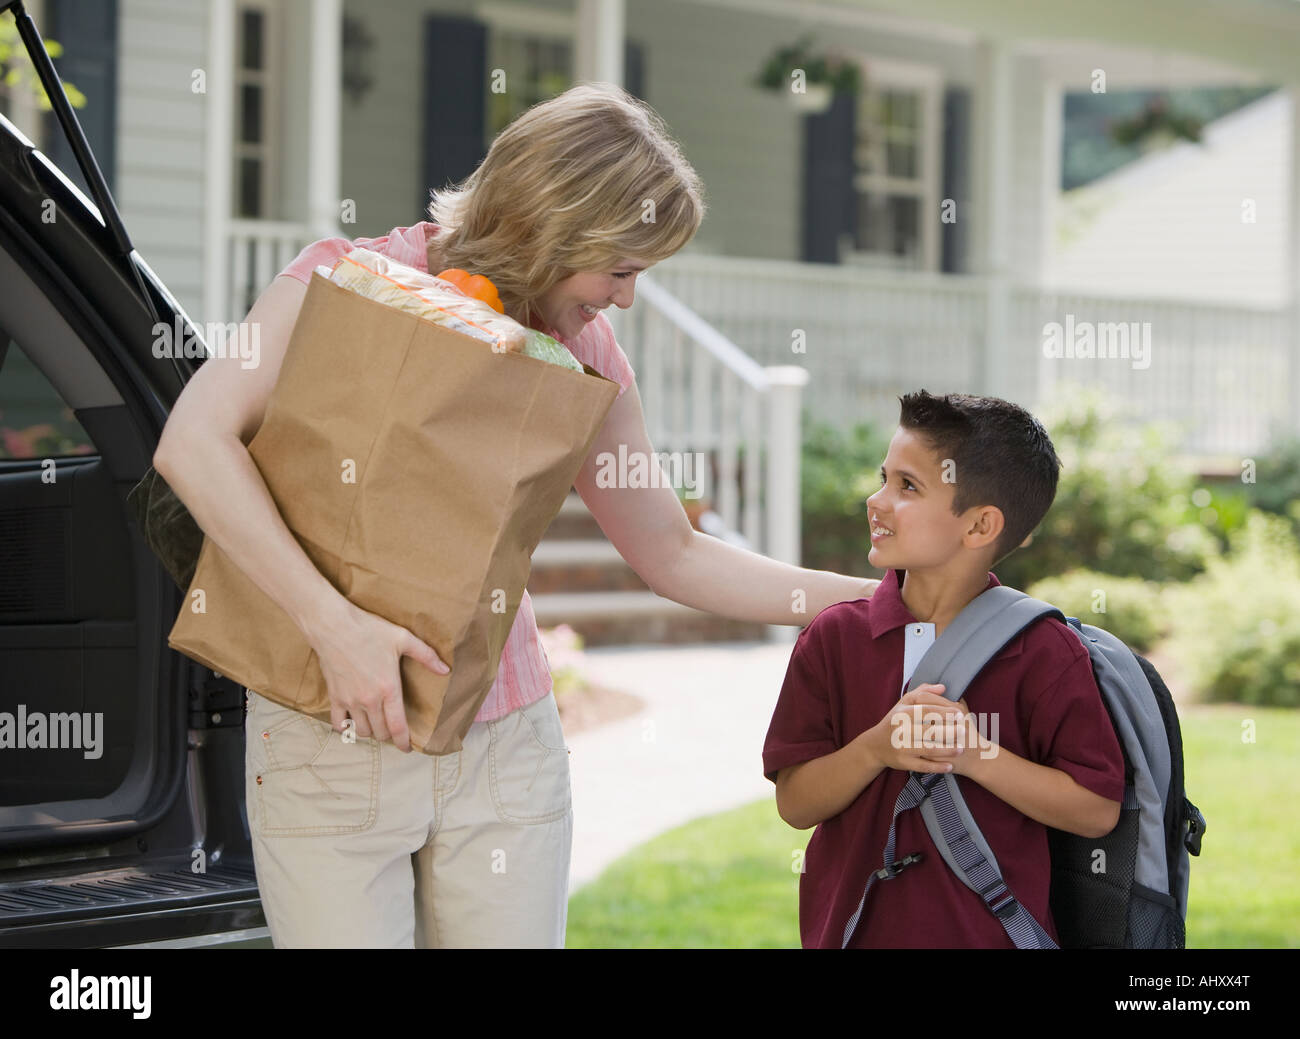 Mother holding groceries and smiling at son - Stock Image